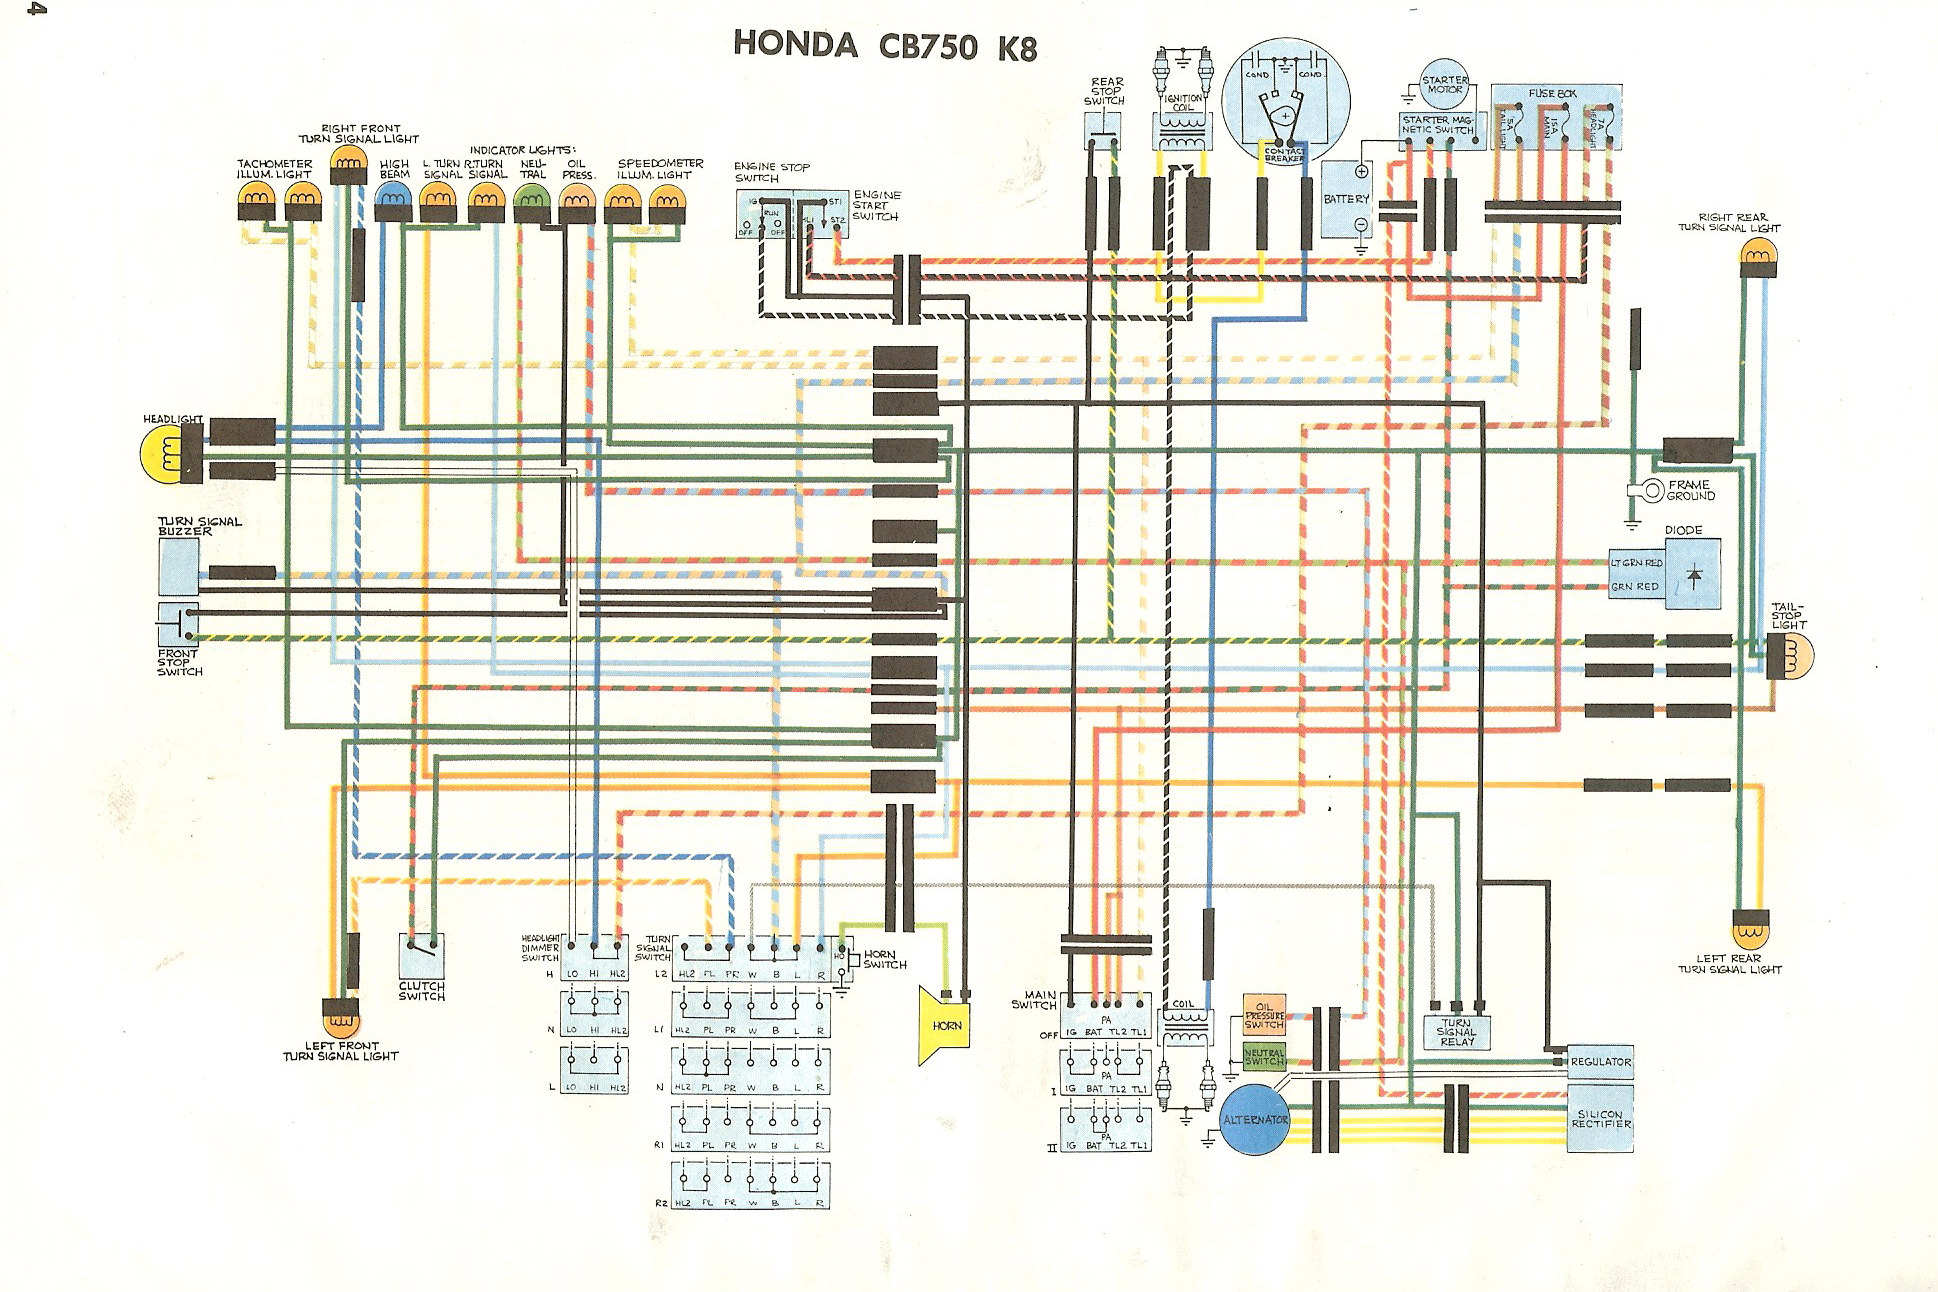 WD750K8 honda cb750 wiring diagram 1970 honda cb750 wiring diagram \u2022 free cb750 k5 wire harness at suagrazia.org